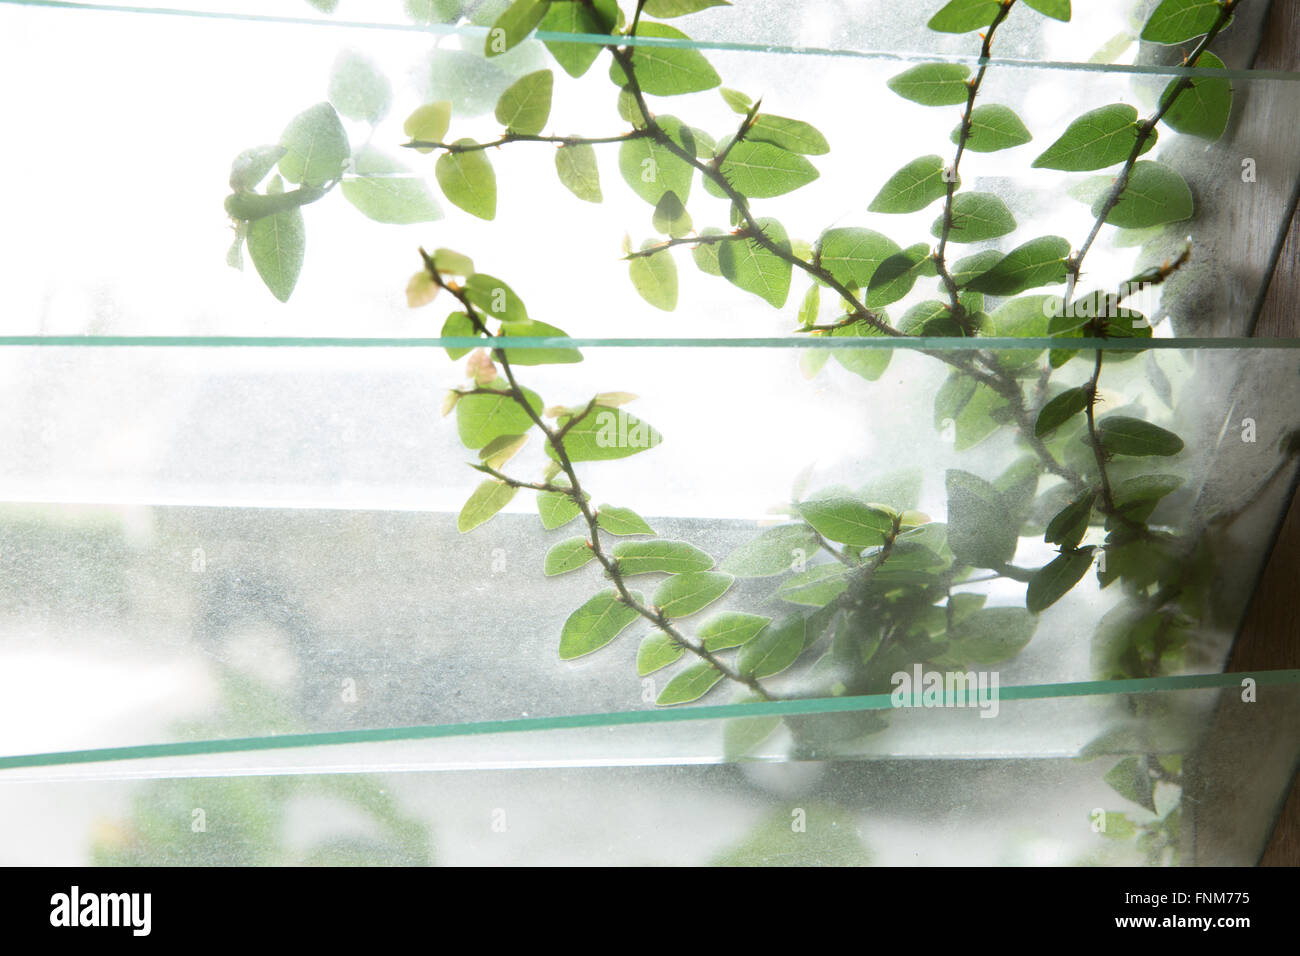 Tropical greenery outside a glass window in lush humid climate in Penang, Malaysia - Stock Image